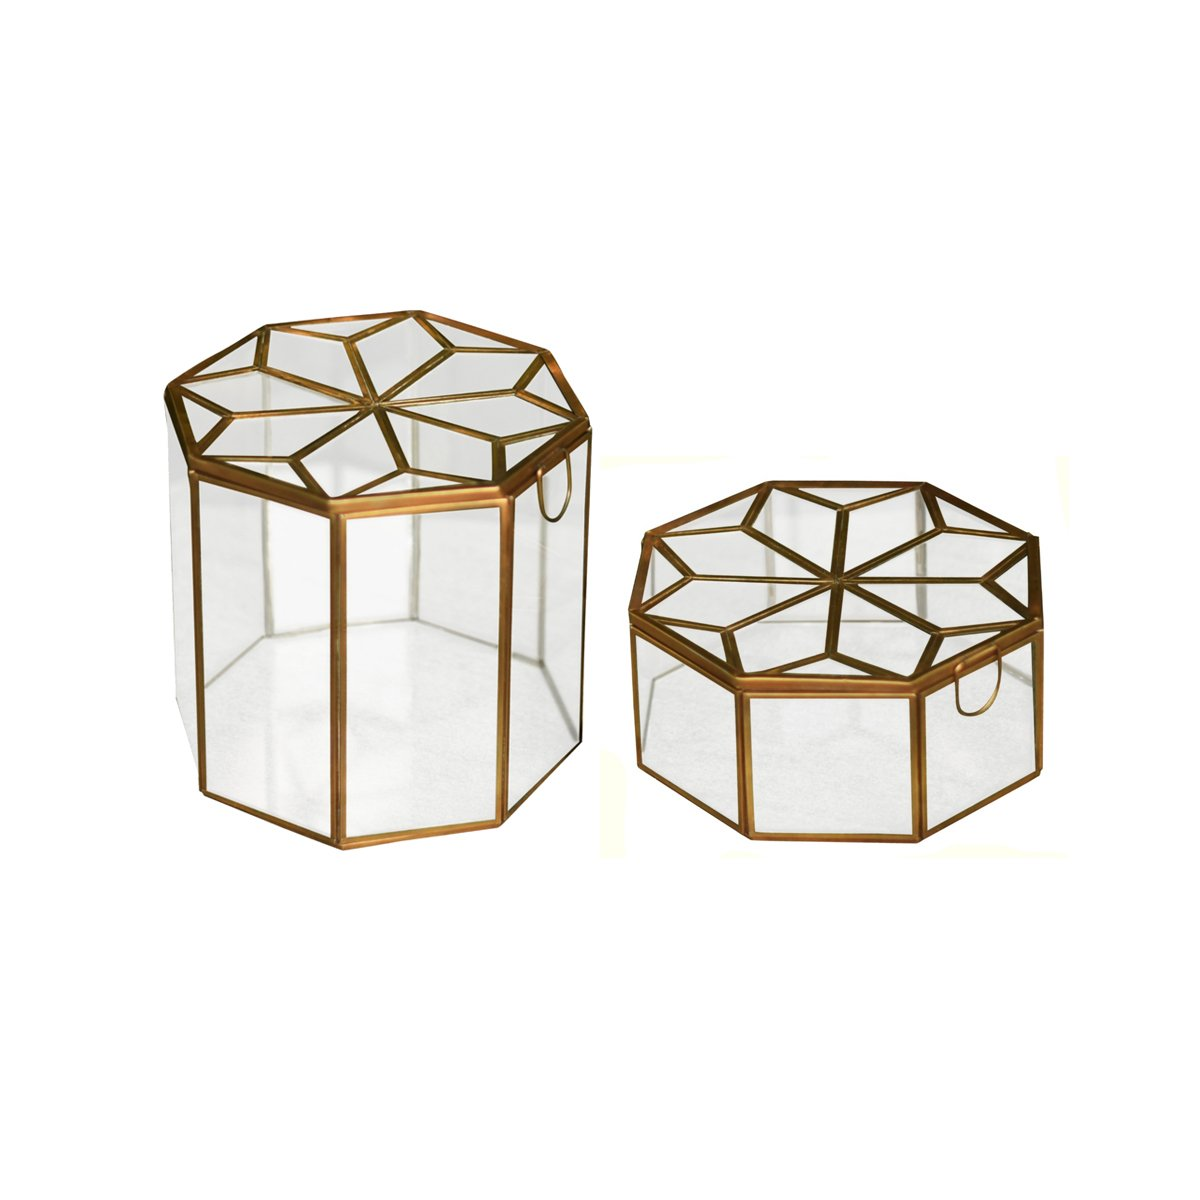 1 BHK Interiors Metal & Glass Octagonal Jewellery Boxes in Gold - Large & Medium